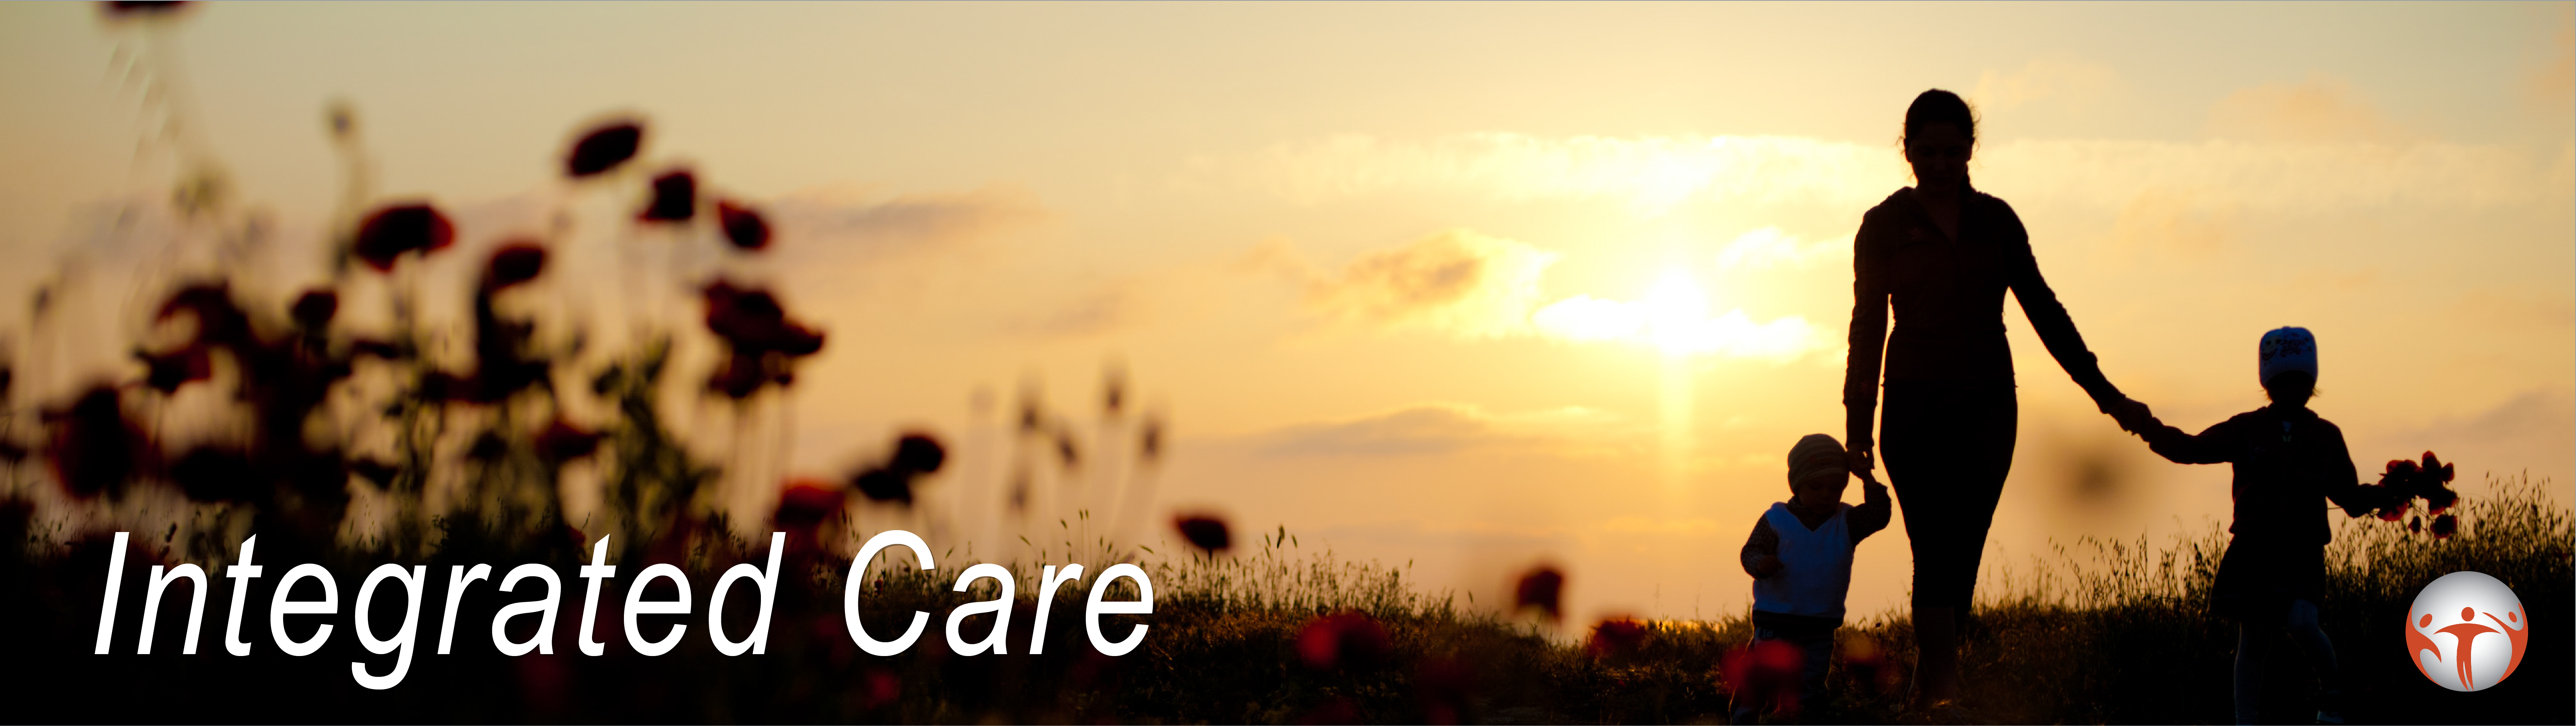 Integrated Care Mid-America Web Page Banner